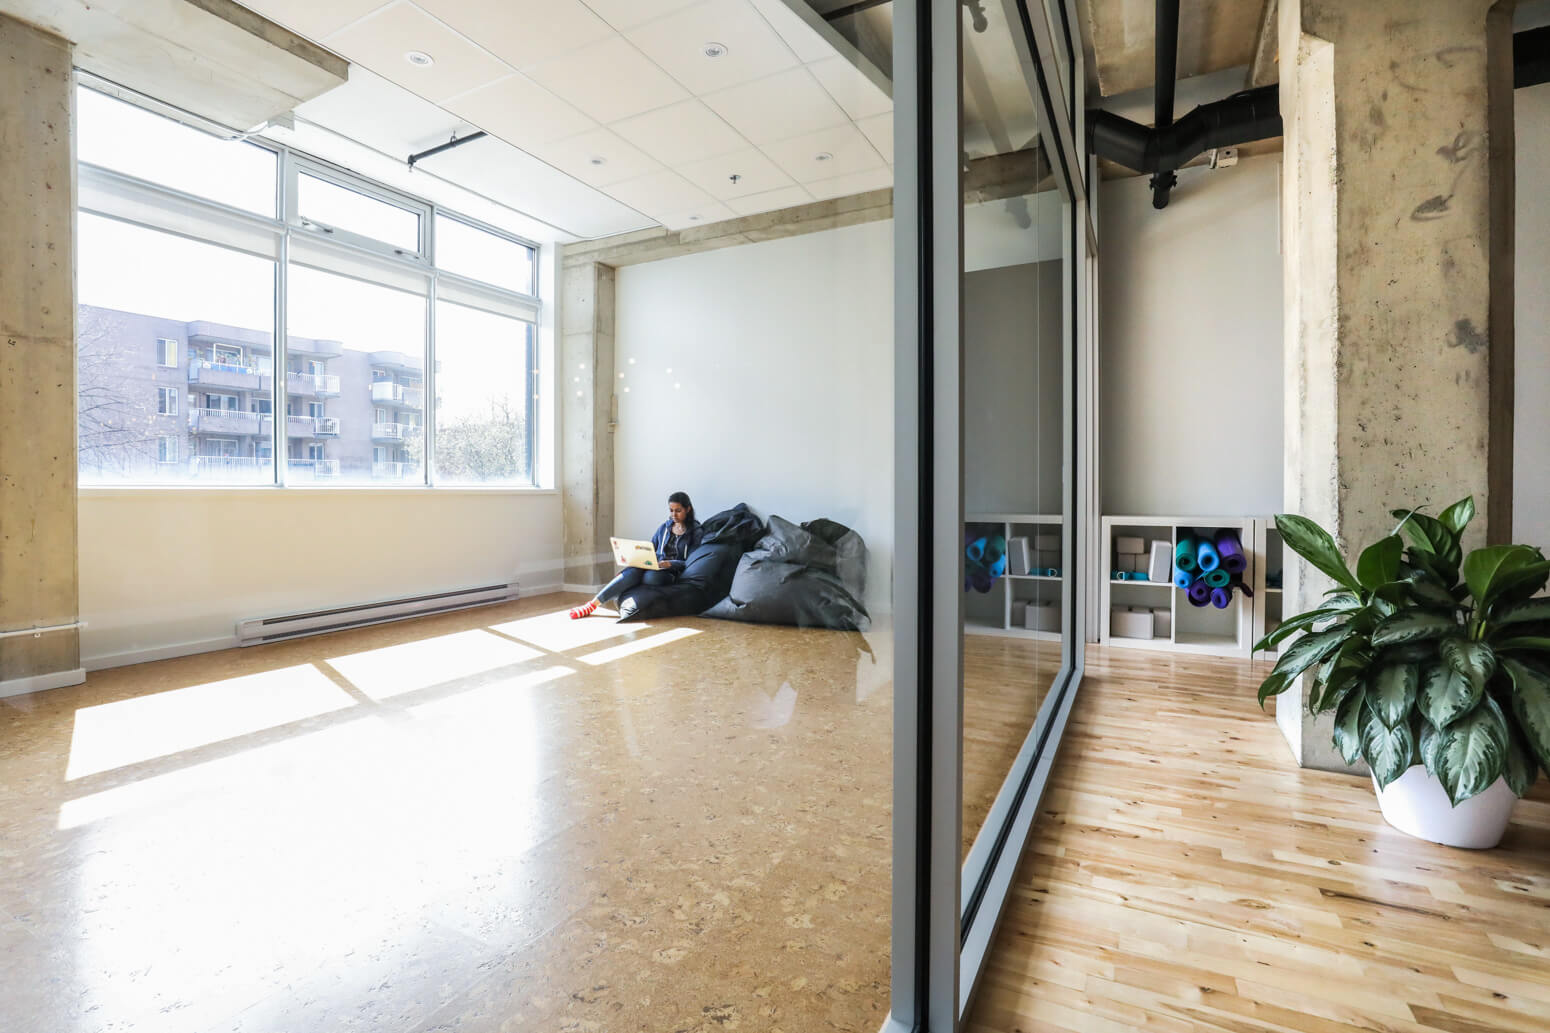 Shutterstock Montreal Office Killer Spaces-1